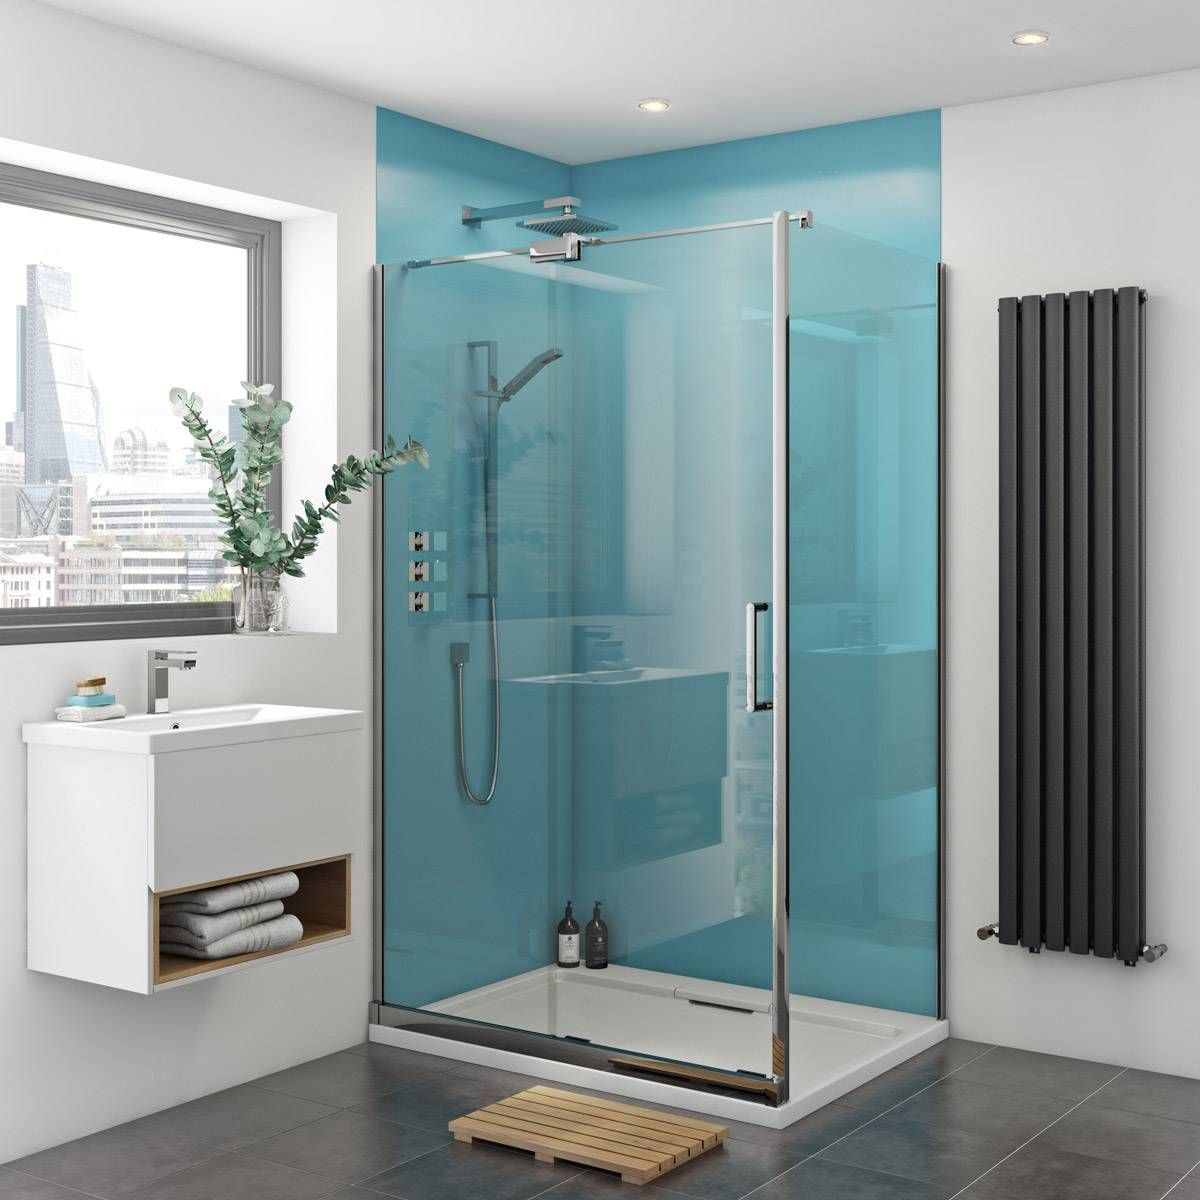 Bathroom Panels Best Of Zenolite Plus Water Acrylic Shower Wall Panel 2440 X 1000 Shower Wall Panels Acrylic Shower Walls Acrylic Wall Panels